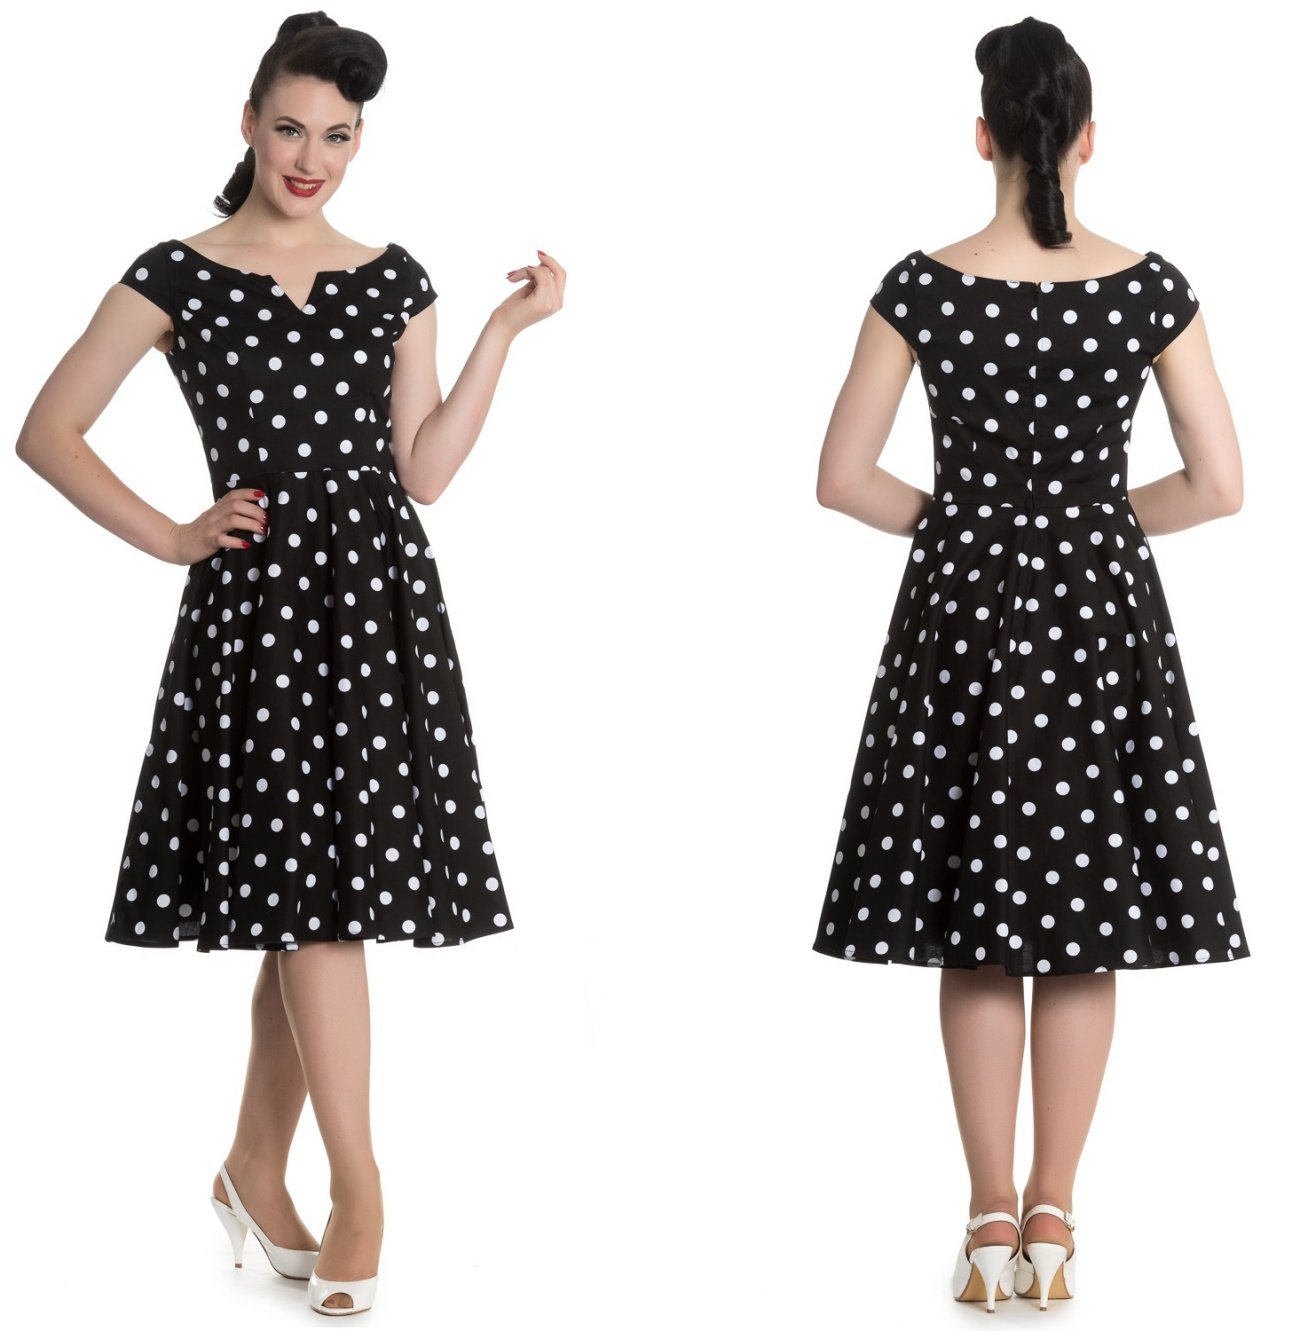 9910a67becf989 Nicky Dress Rock n Roll Kleid Rockabilly Kleid gepunktet Hellbunny ...